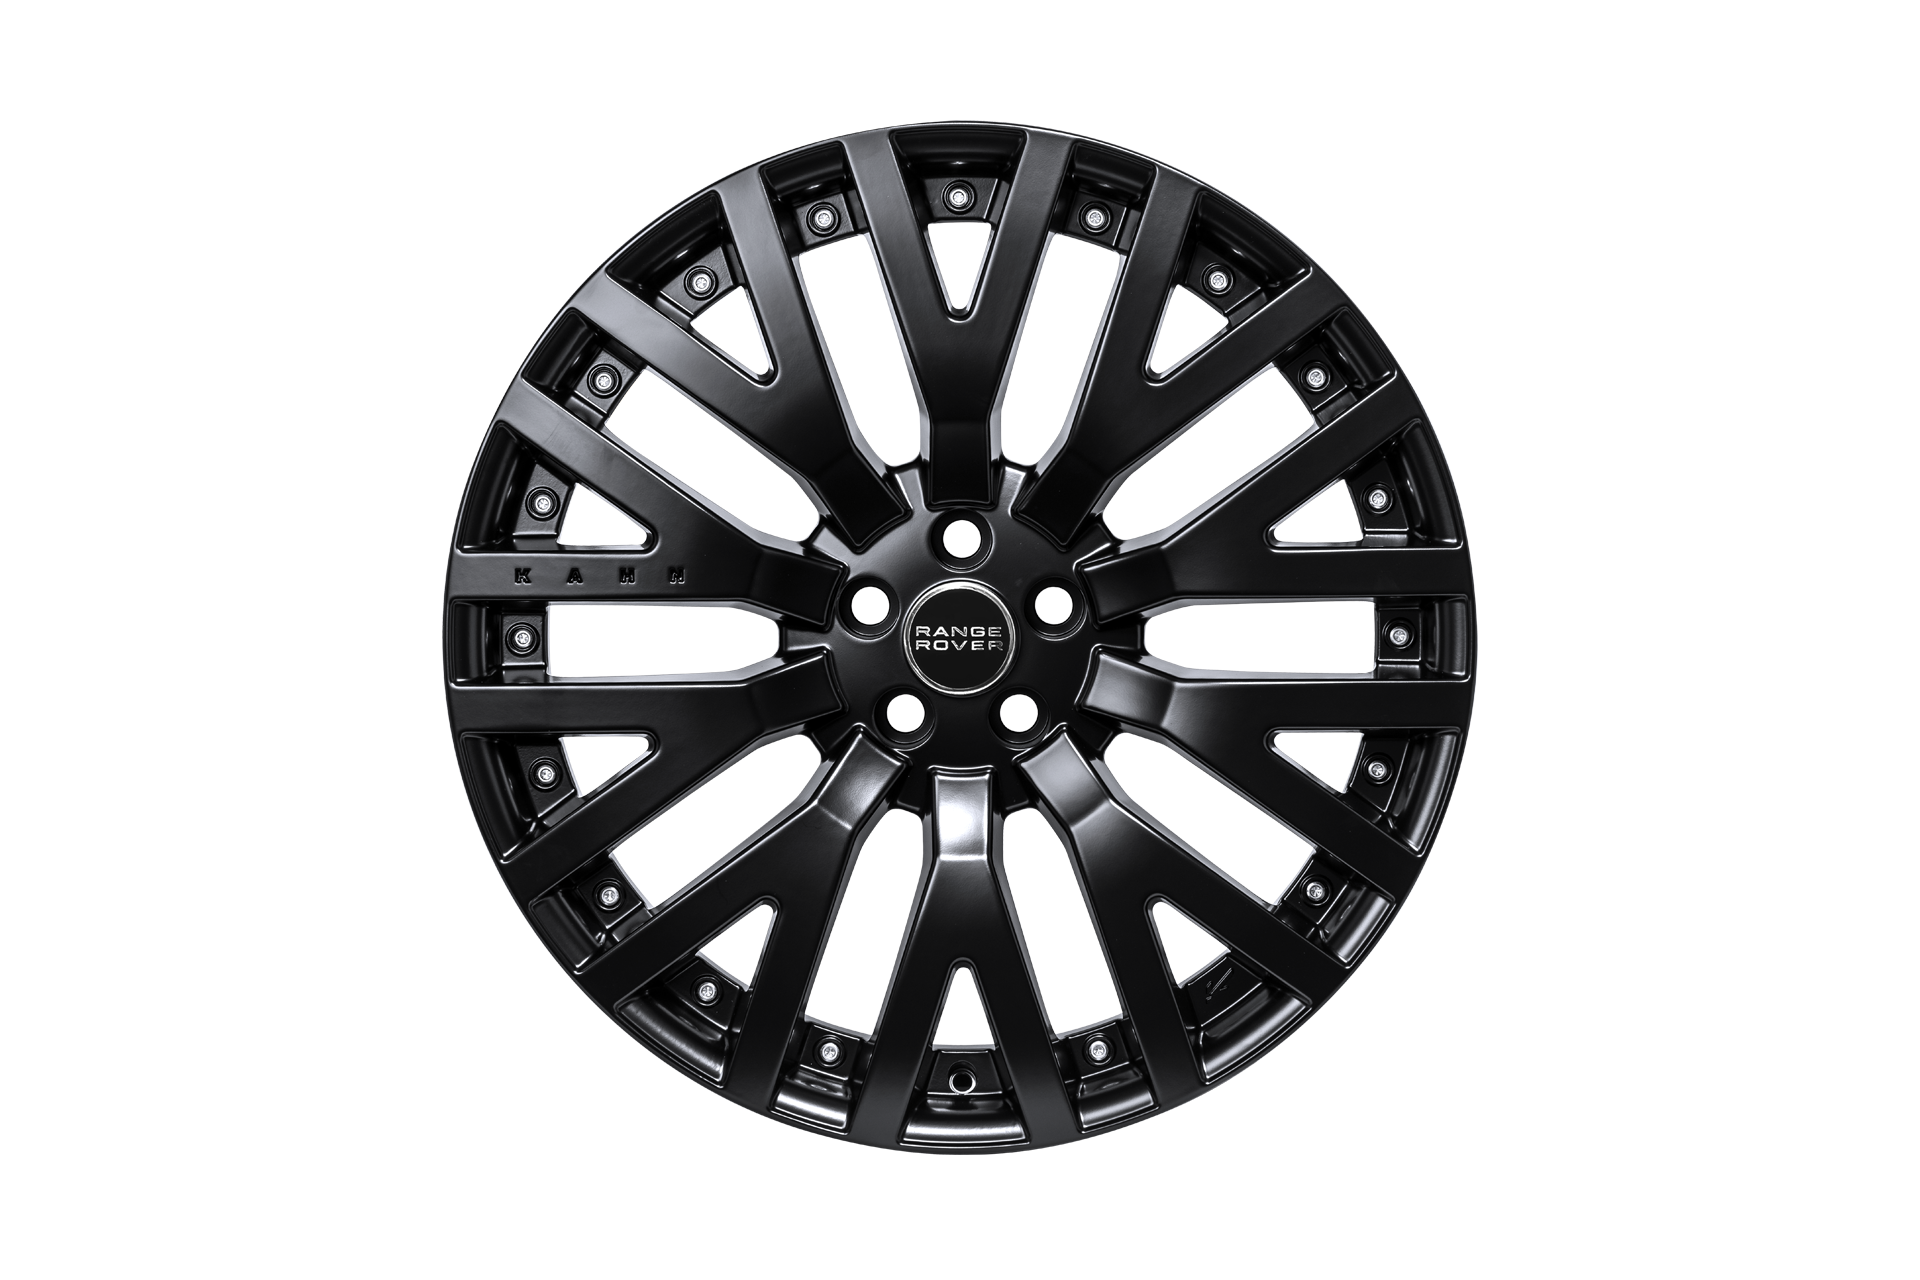 Range Rover Sport (2013-2018) Rs-2 Light Alloy Wheels Image 4937